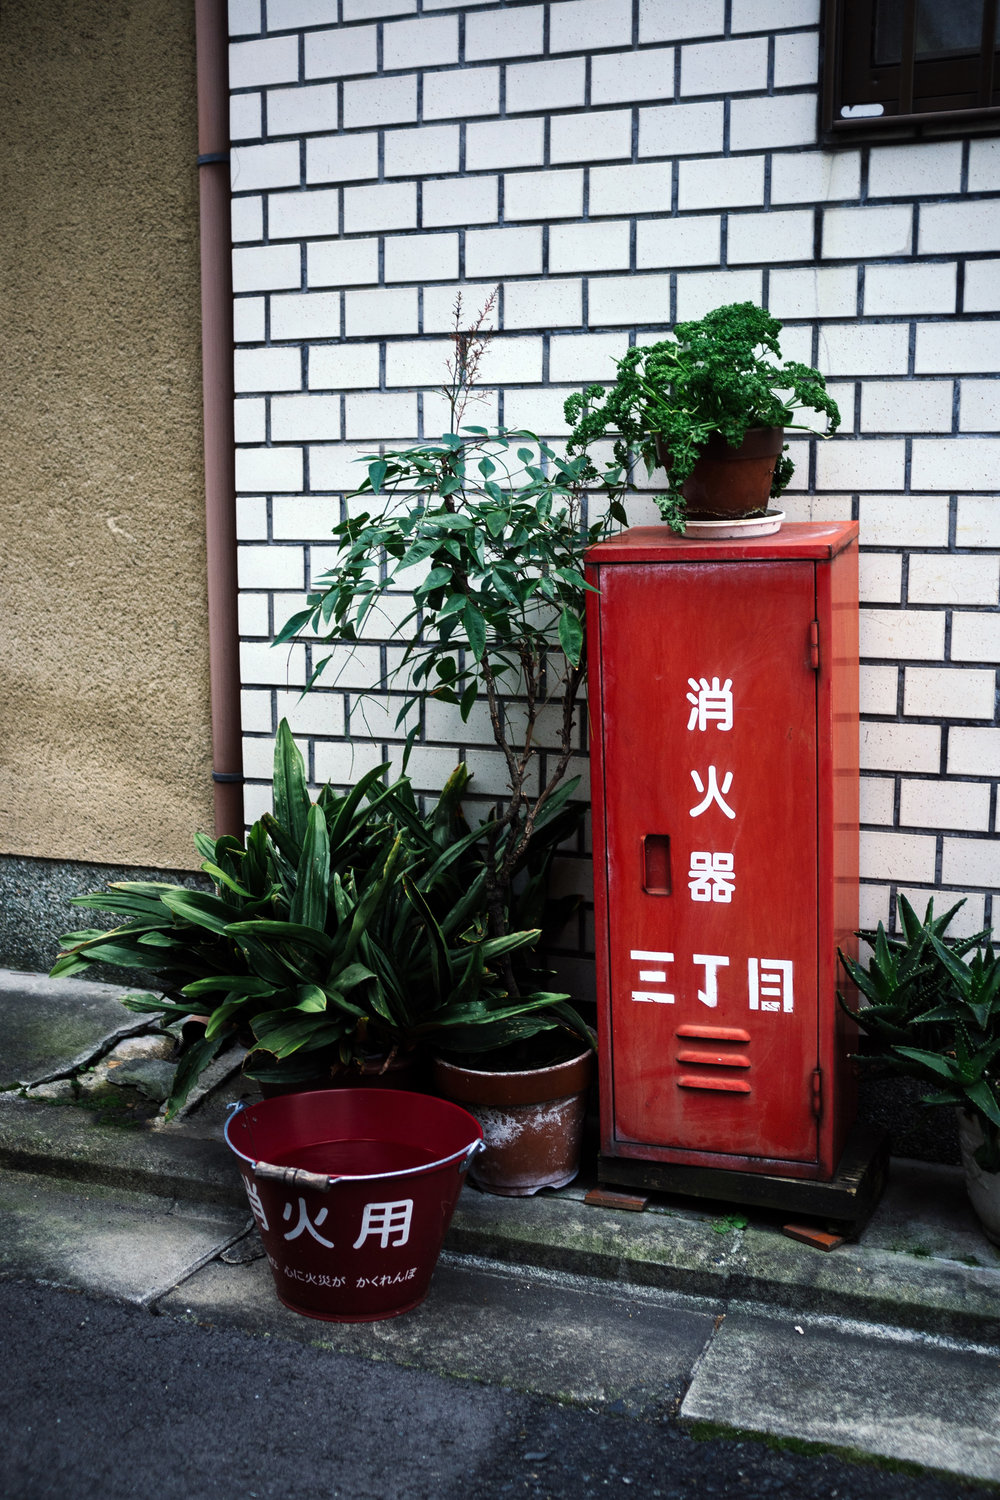 Kyoto Red Box edit.jpg